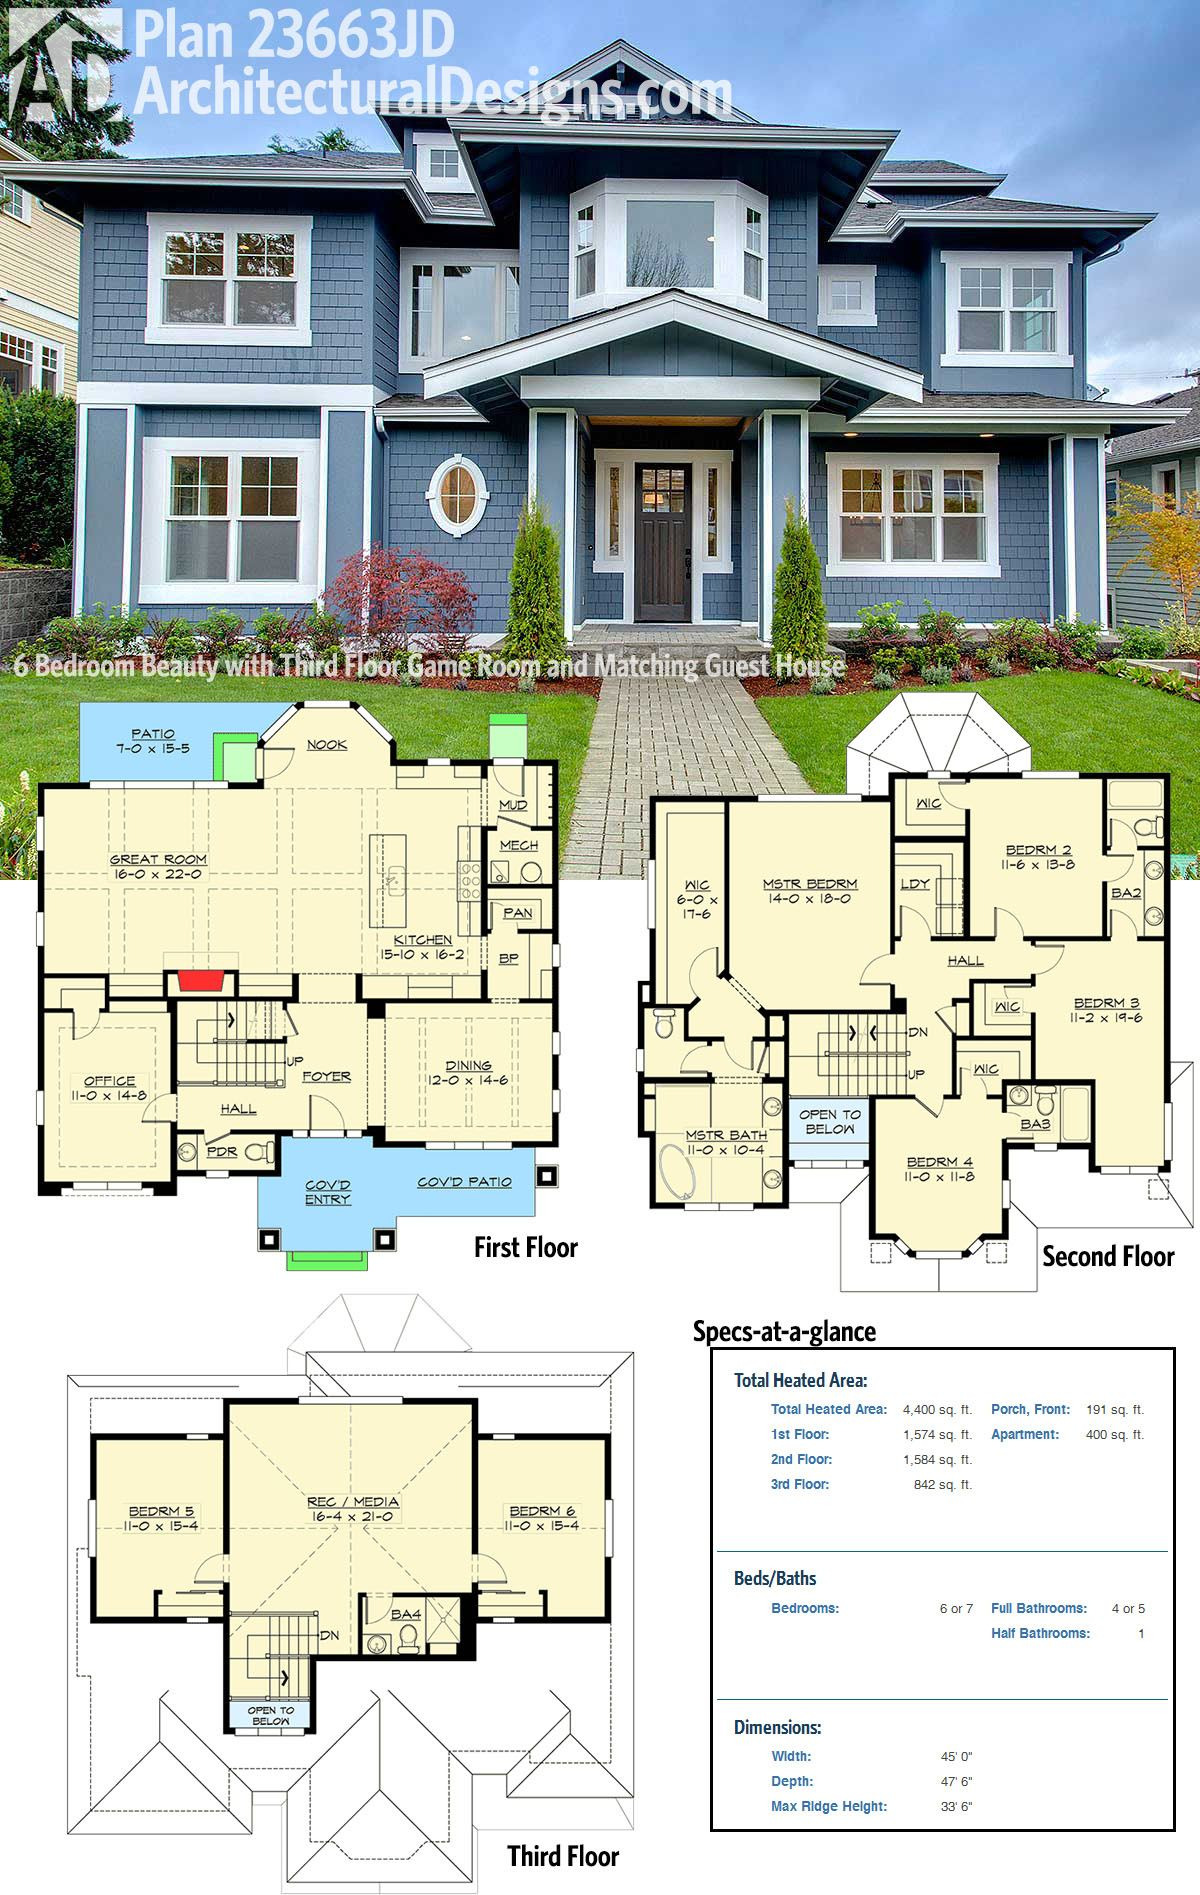 Architectural Design Home Plans Fresh Architectural Designs House Plan Jd Not Only Gives You